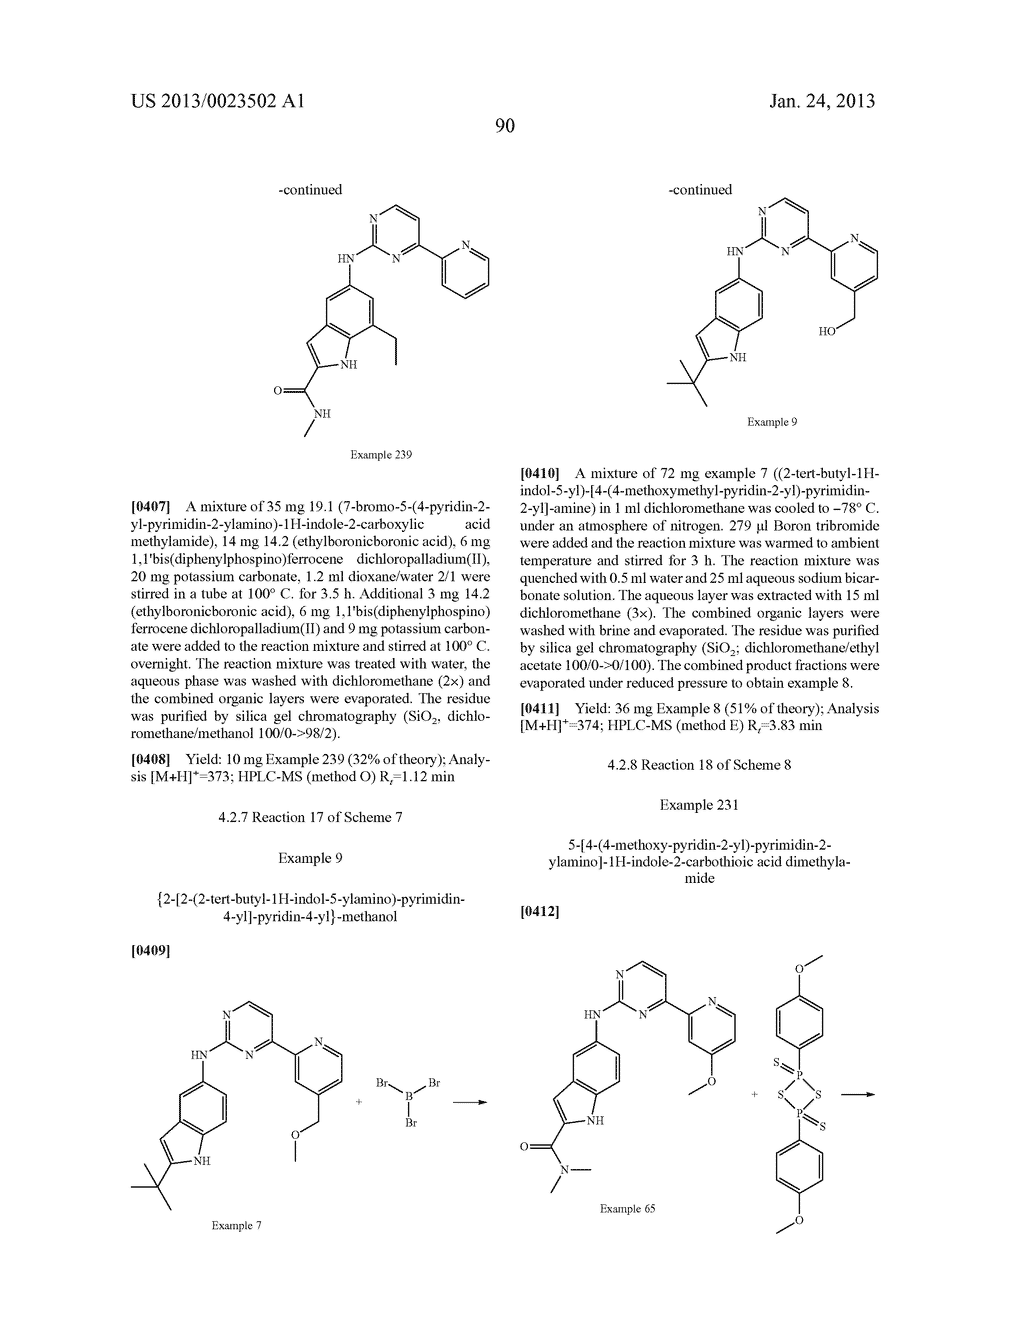 SUBSTITUTED PYRIDINYL-PYRIMIDINES AND THEIR USE AS MEDICAMENTS - diagram, schematic, and image 91